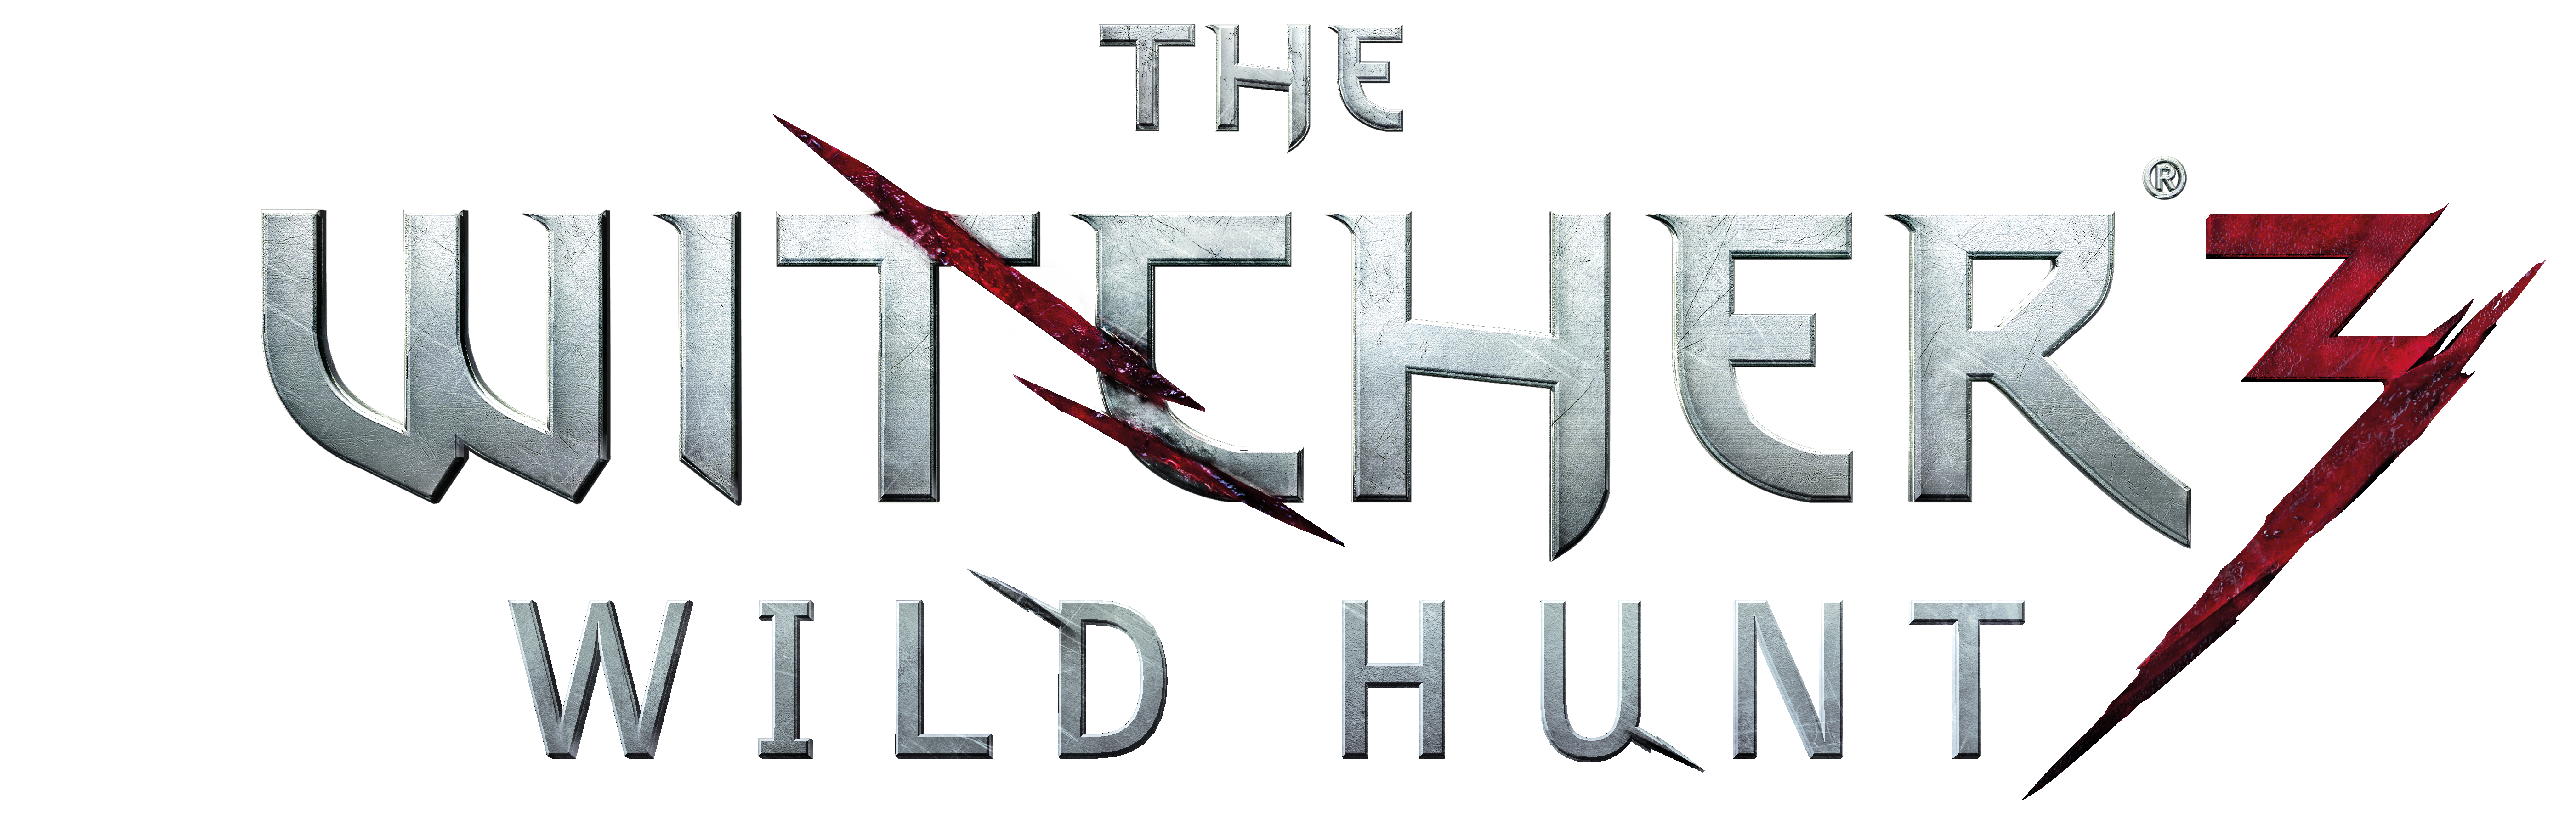 The witcher 3 logo png. Wild hunt promotional art